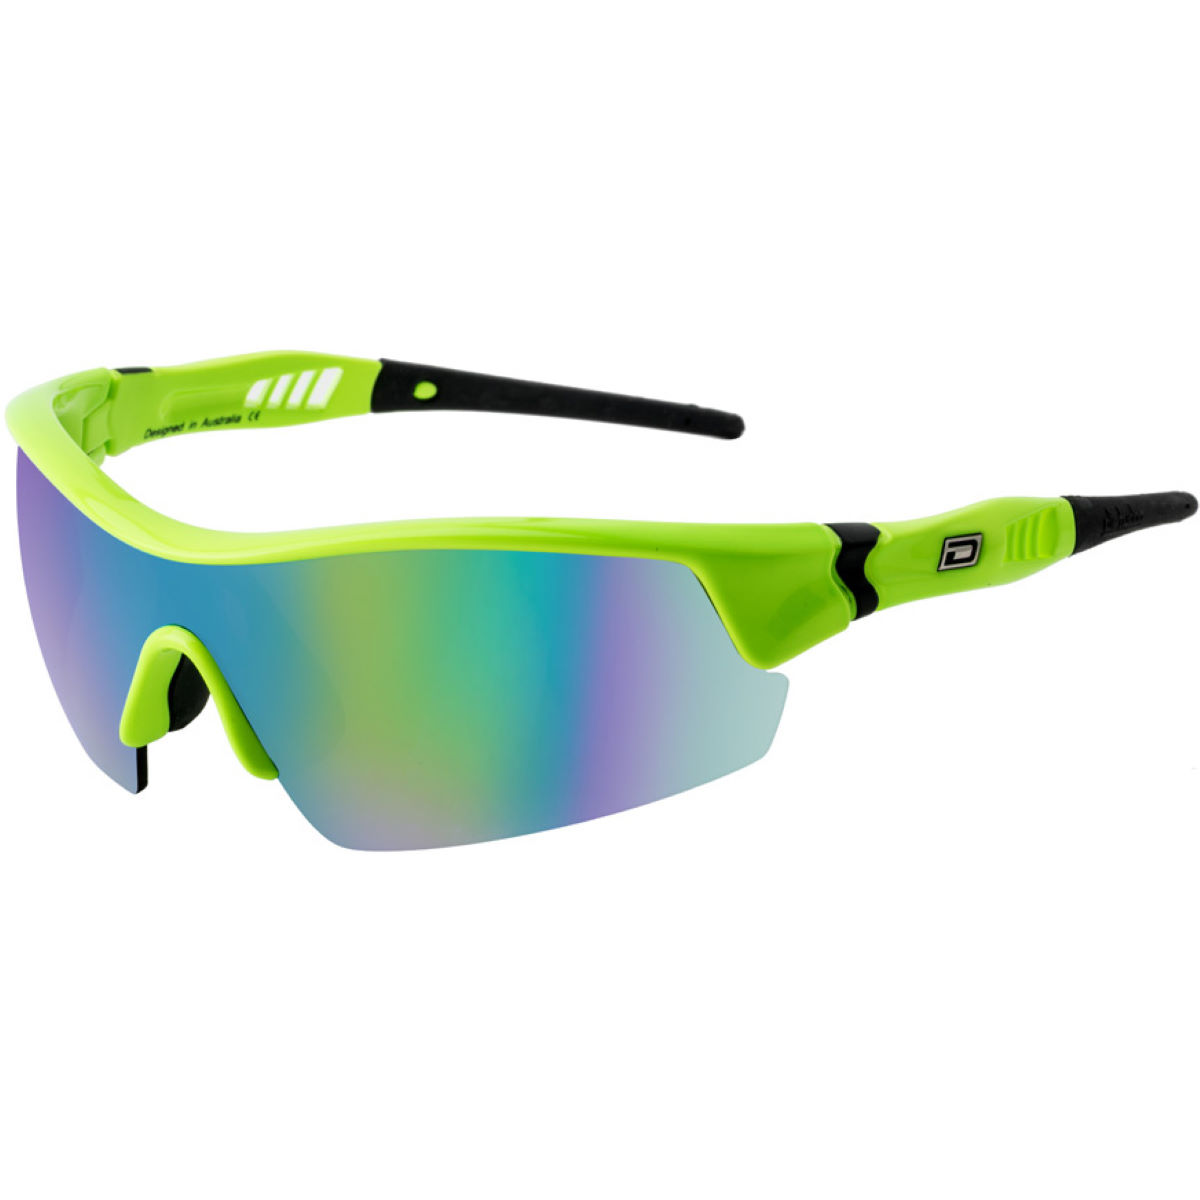 Dirty Dog Edge Sports Sunglasses - Gafas de sol